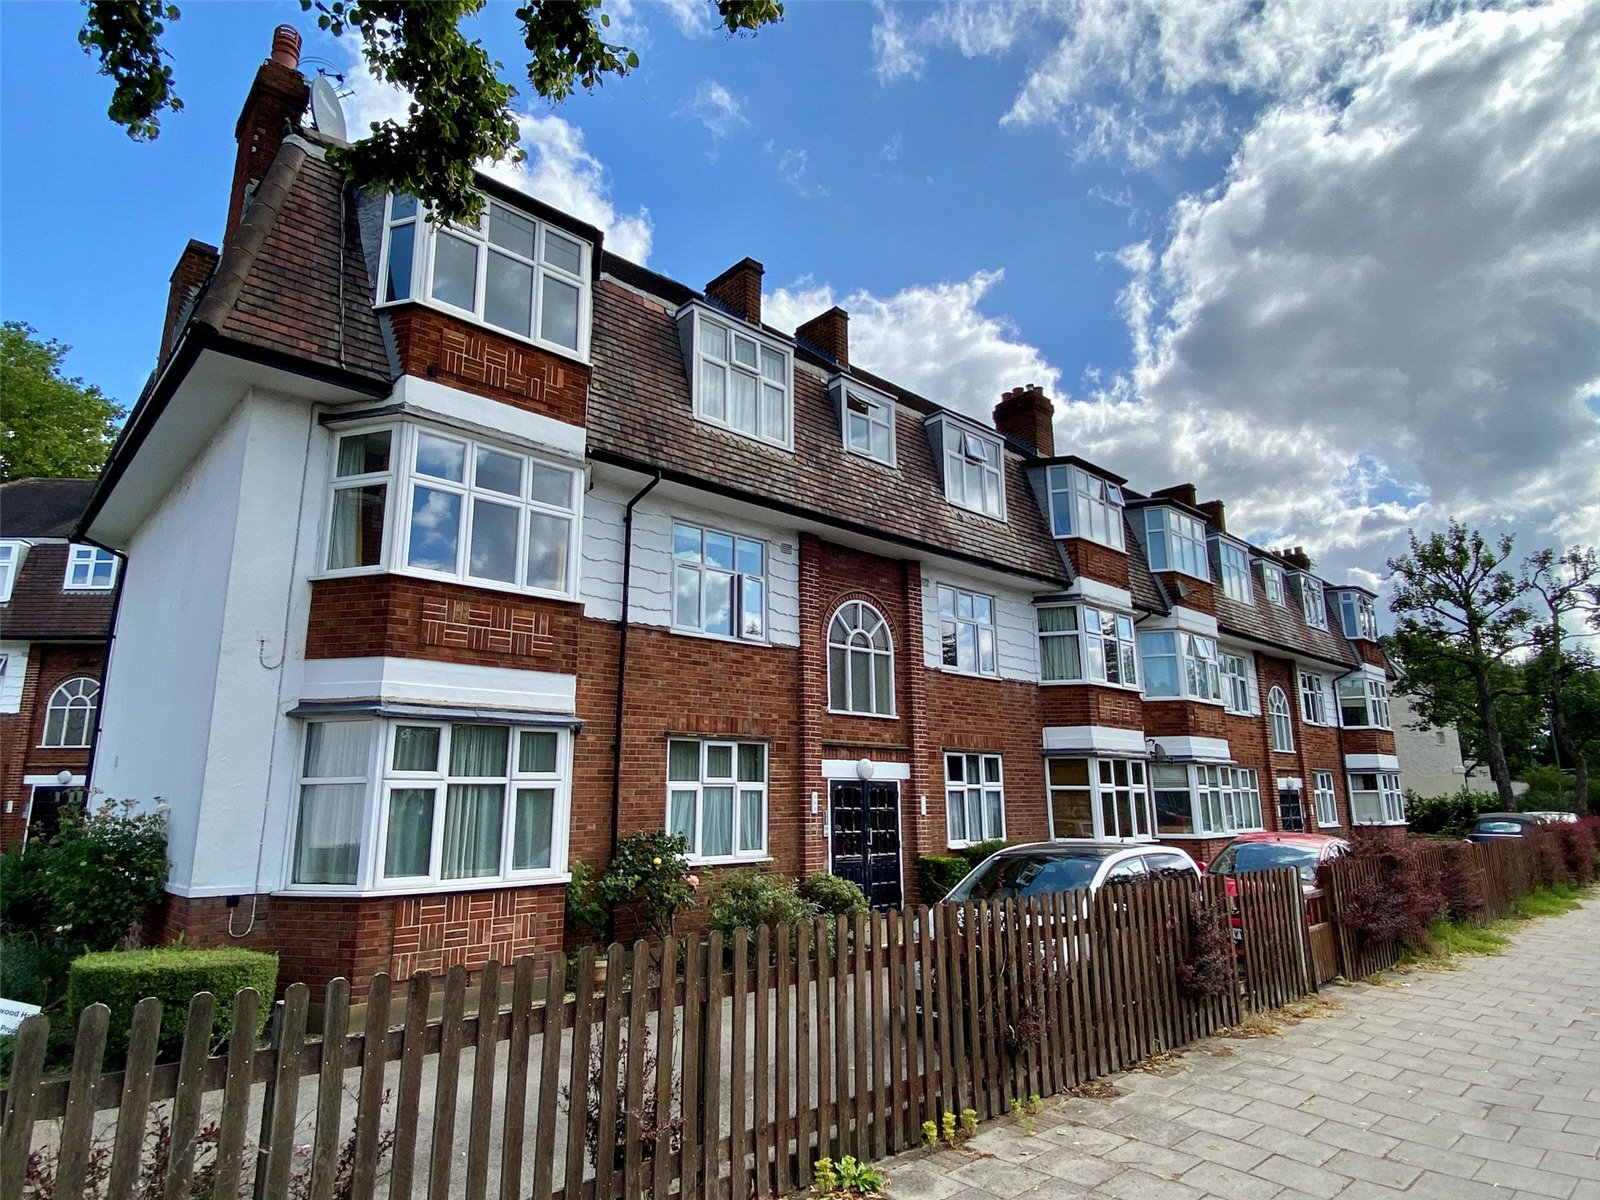 2 bed apartment to rent in East Finchley, N2 0TA, N2 0